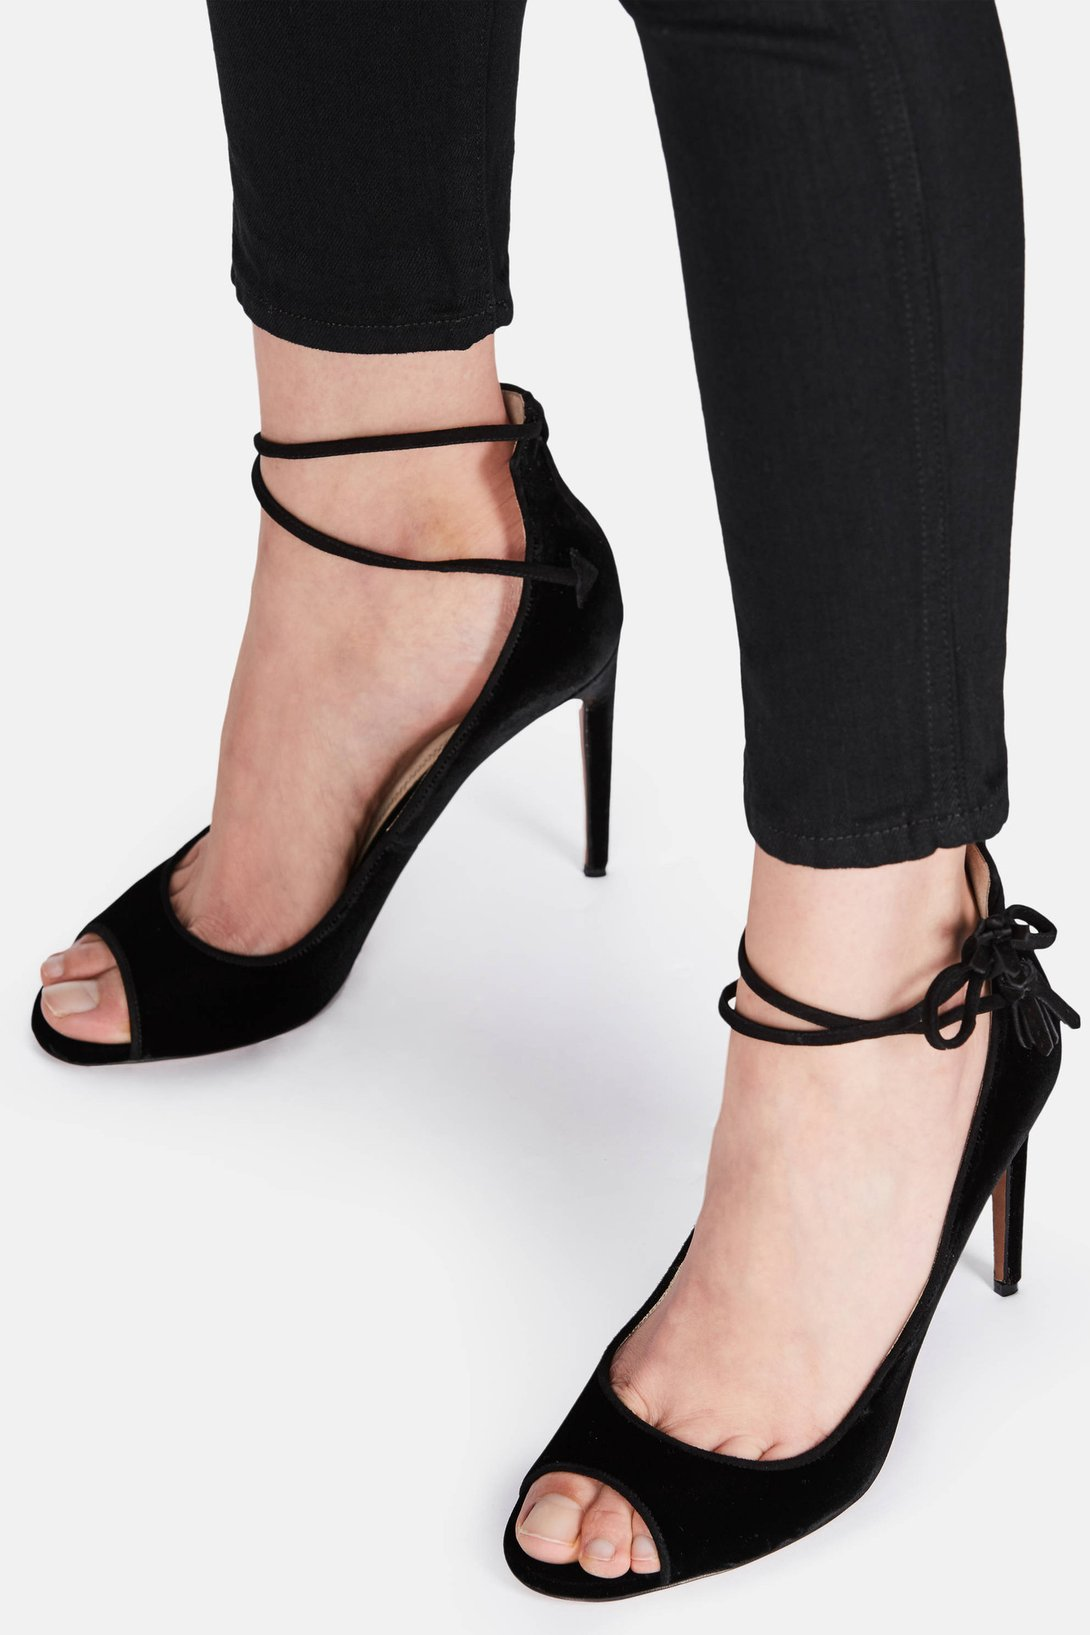 407b7d6cc04 Shop Valentina Carrano Nolita - Black Velvet from The Best of NYC Designer  Sample Sale Women s Shoes Sample Sale